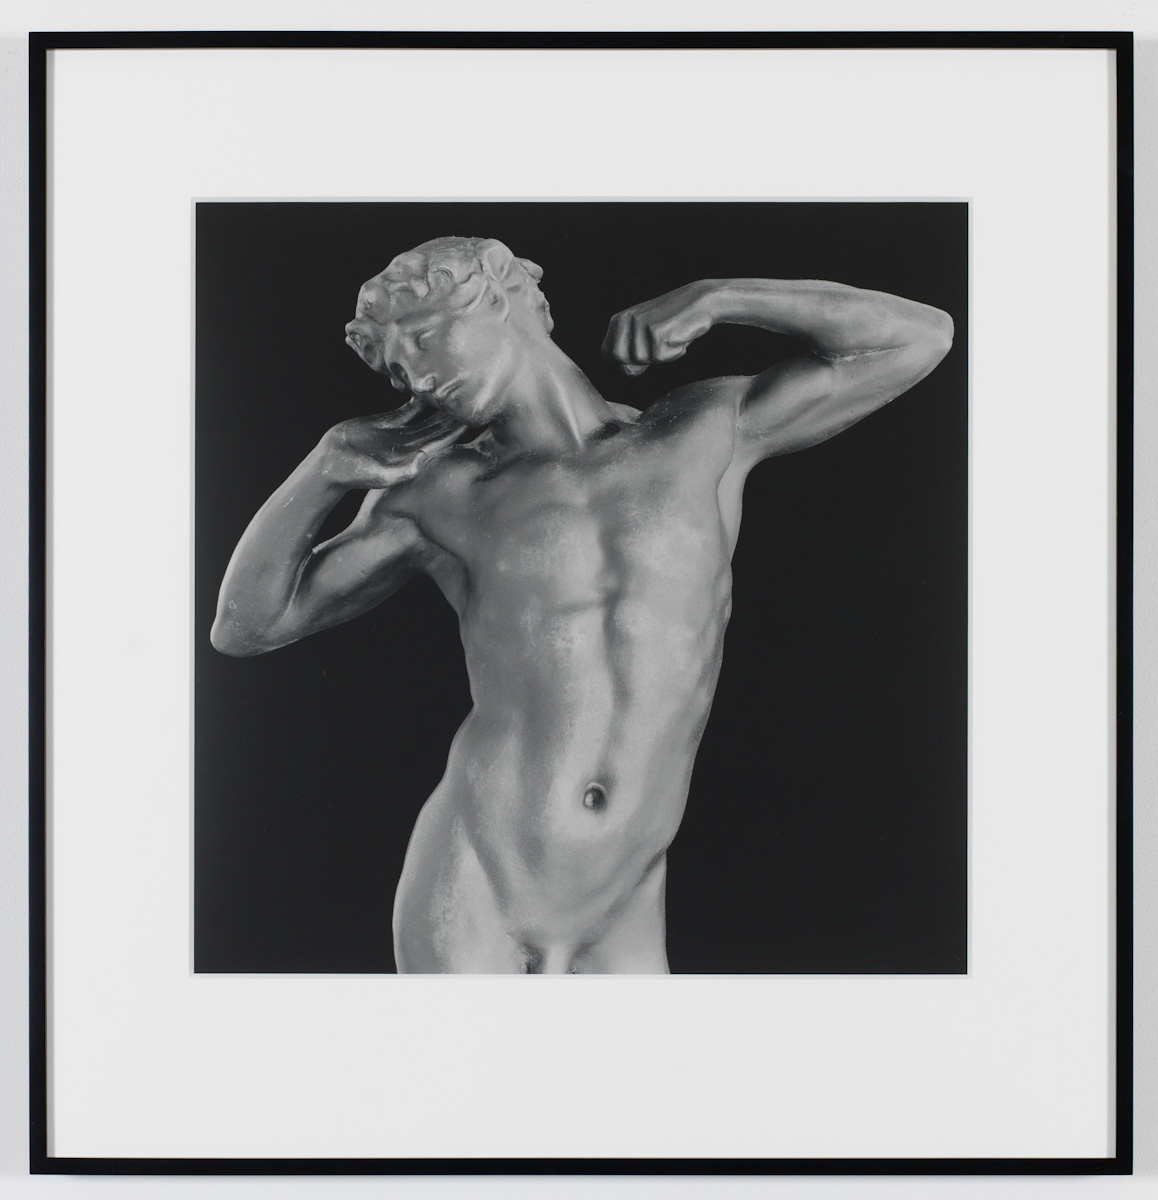 Robert Mapplethorpe, The Sluggard